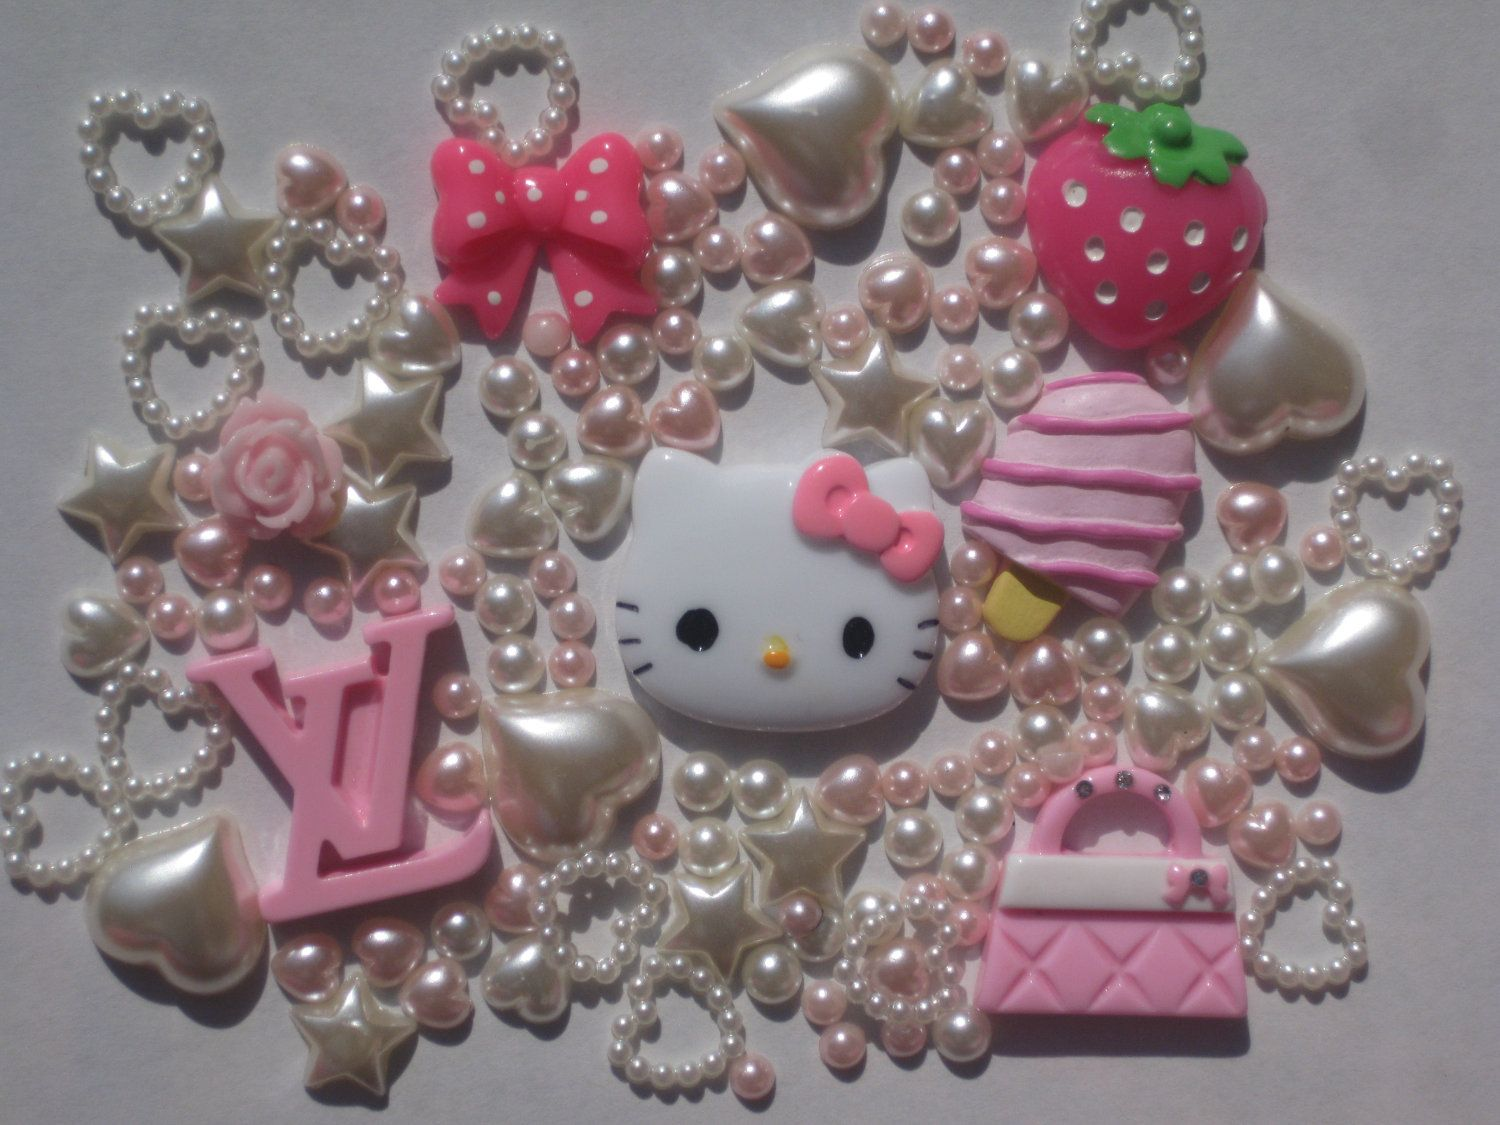 DIY Hello kitty decoden resin cabochon set for cellphone